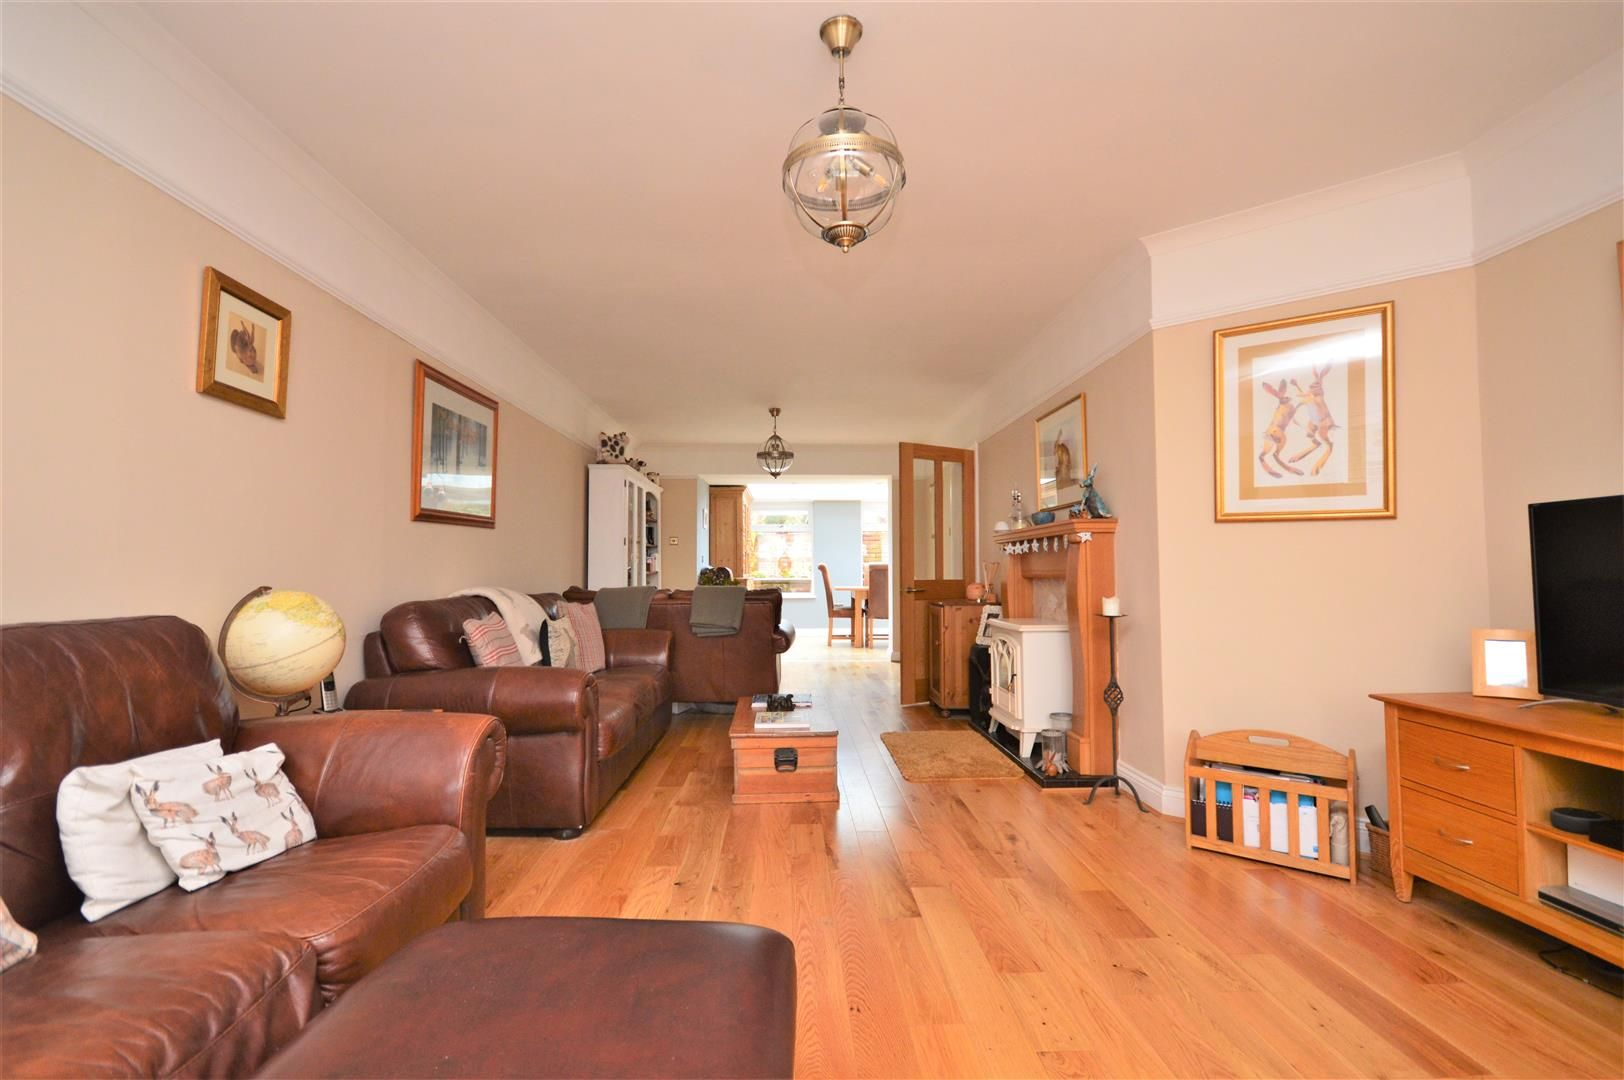 4 bed detached for sale in Kings Caple 5